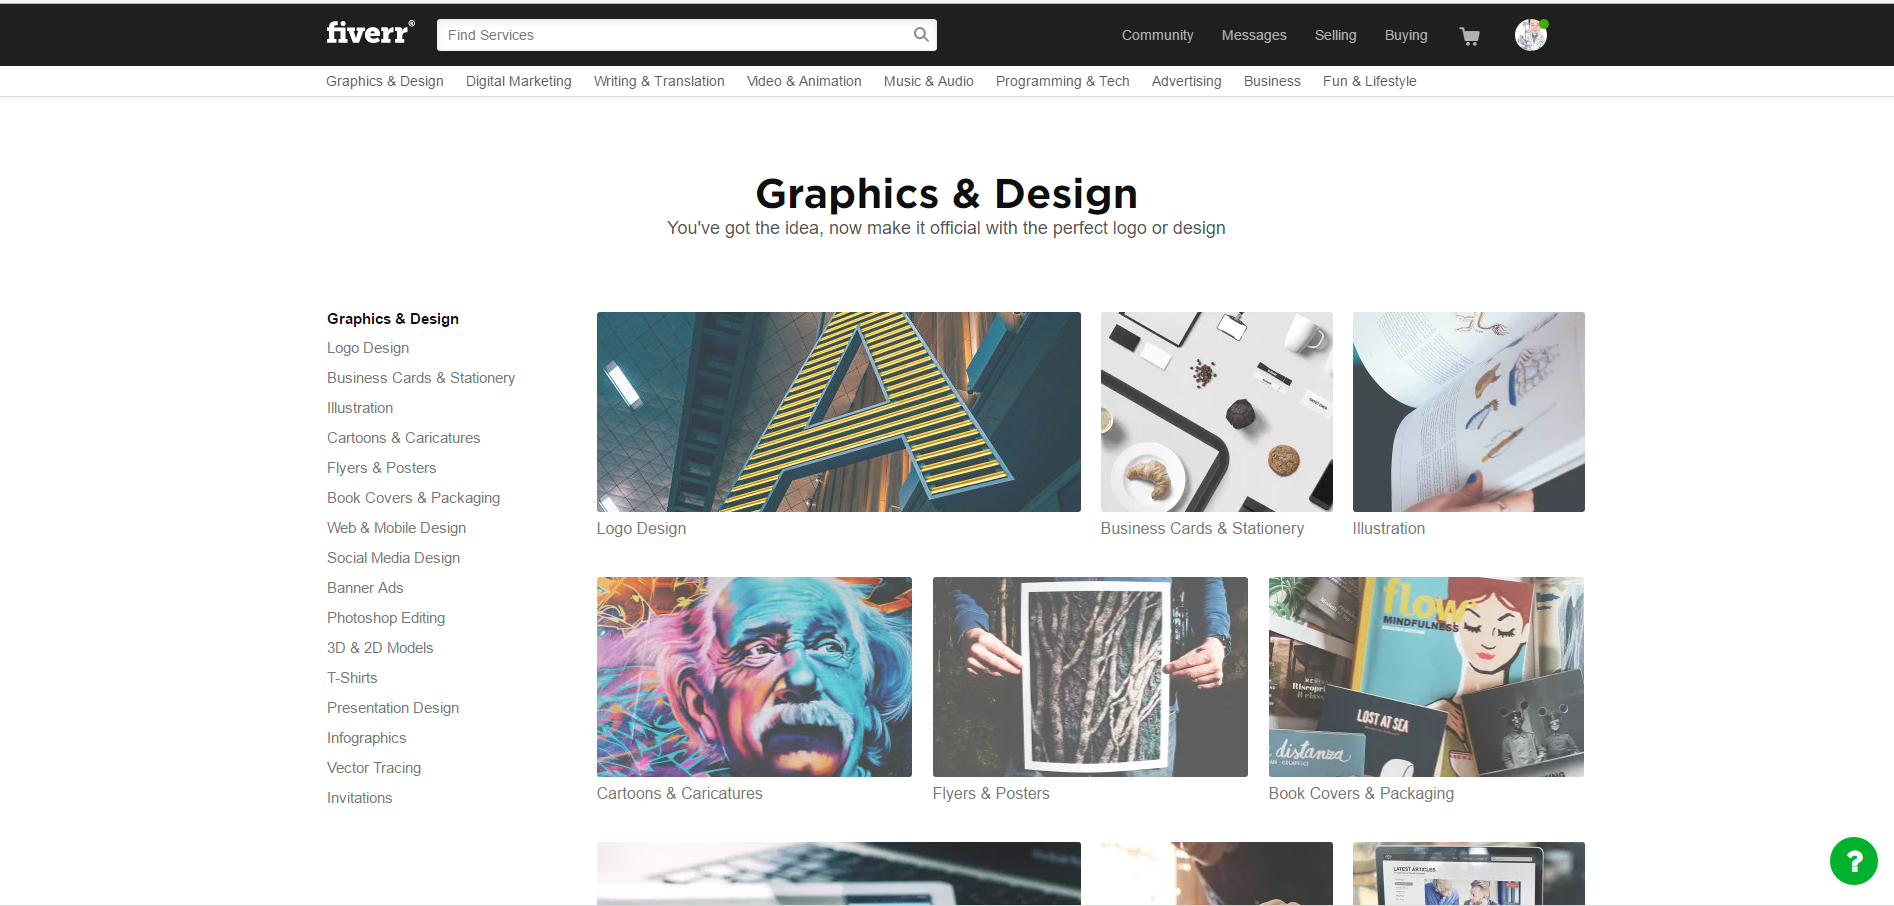 Fiverr - Graphic Design...The Nifty Thrifty Way